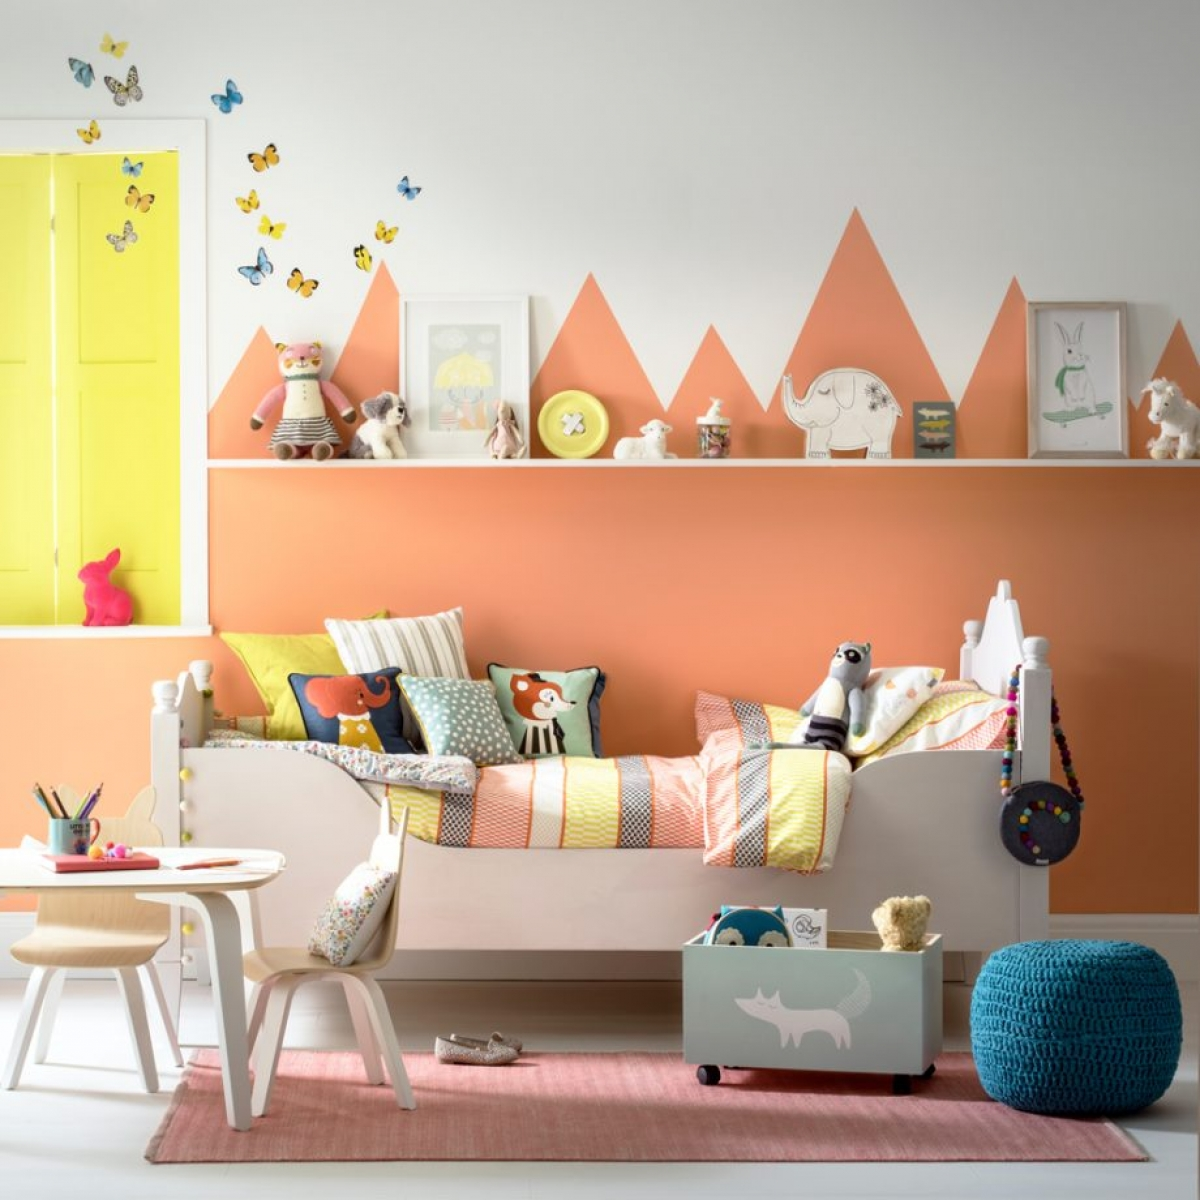 The spring personality os oerfect for a childs interior design scheme. Here warm orange and vibrant yellow work to make a soft yet uplifting colour scheme